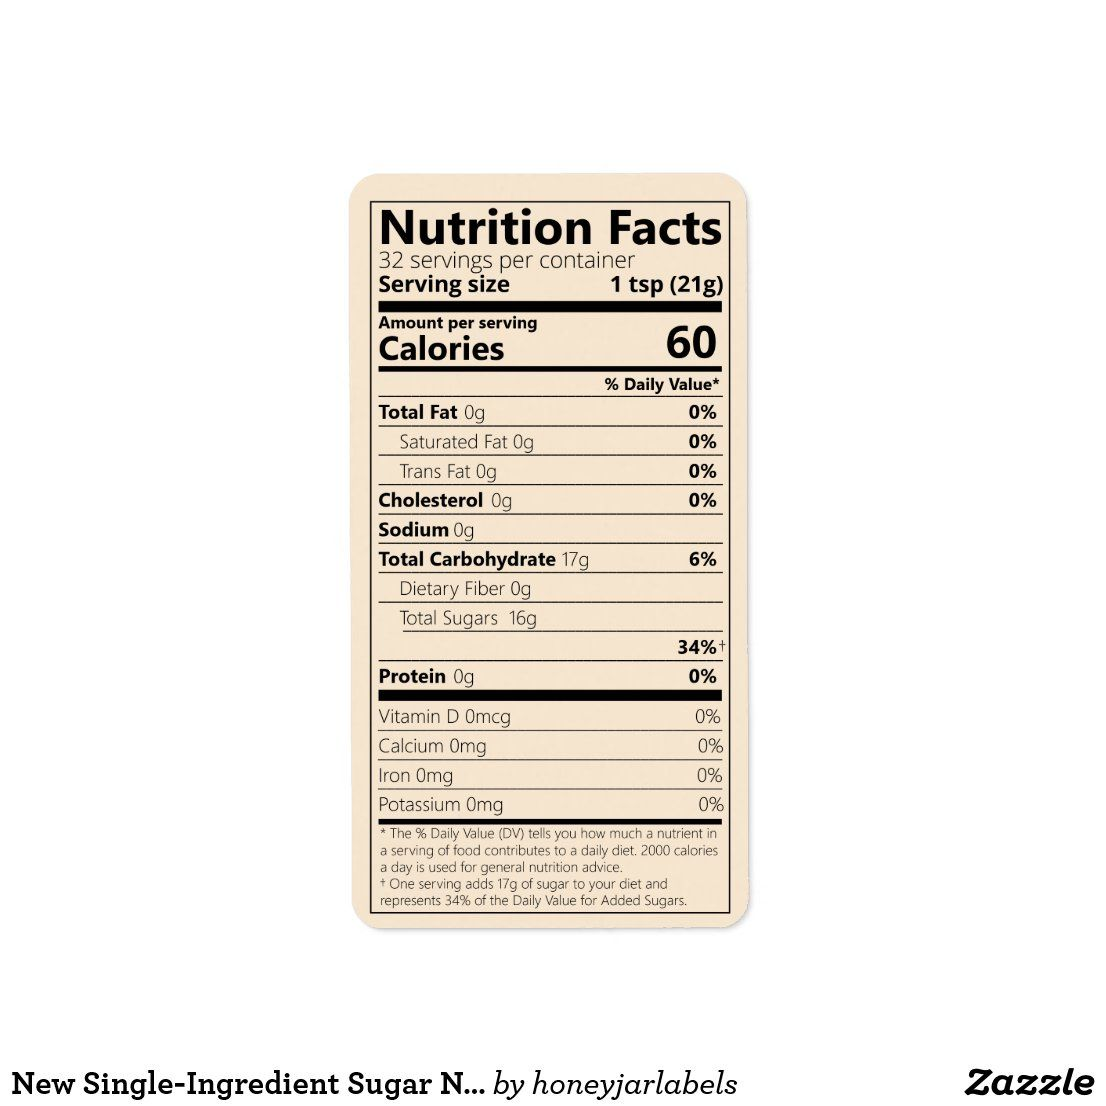 New Single Ingredient Sugar Nutrition Facts Label Zazzle Com Nutrition Facts Label Sugar Nutrition Nutrition Facts